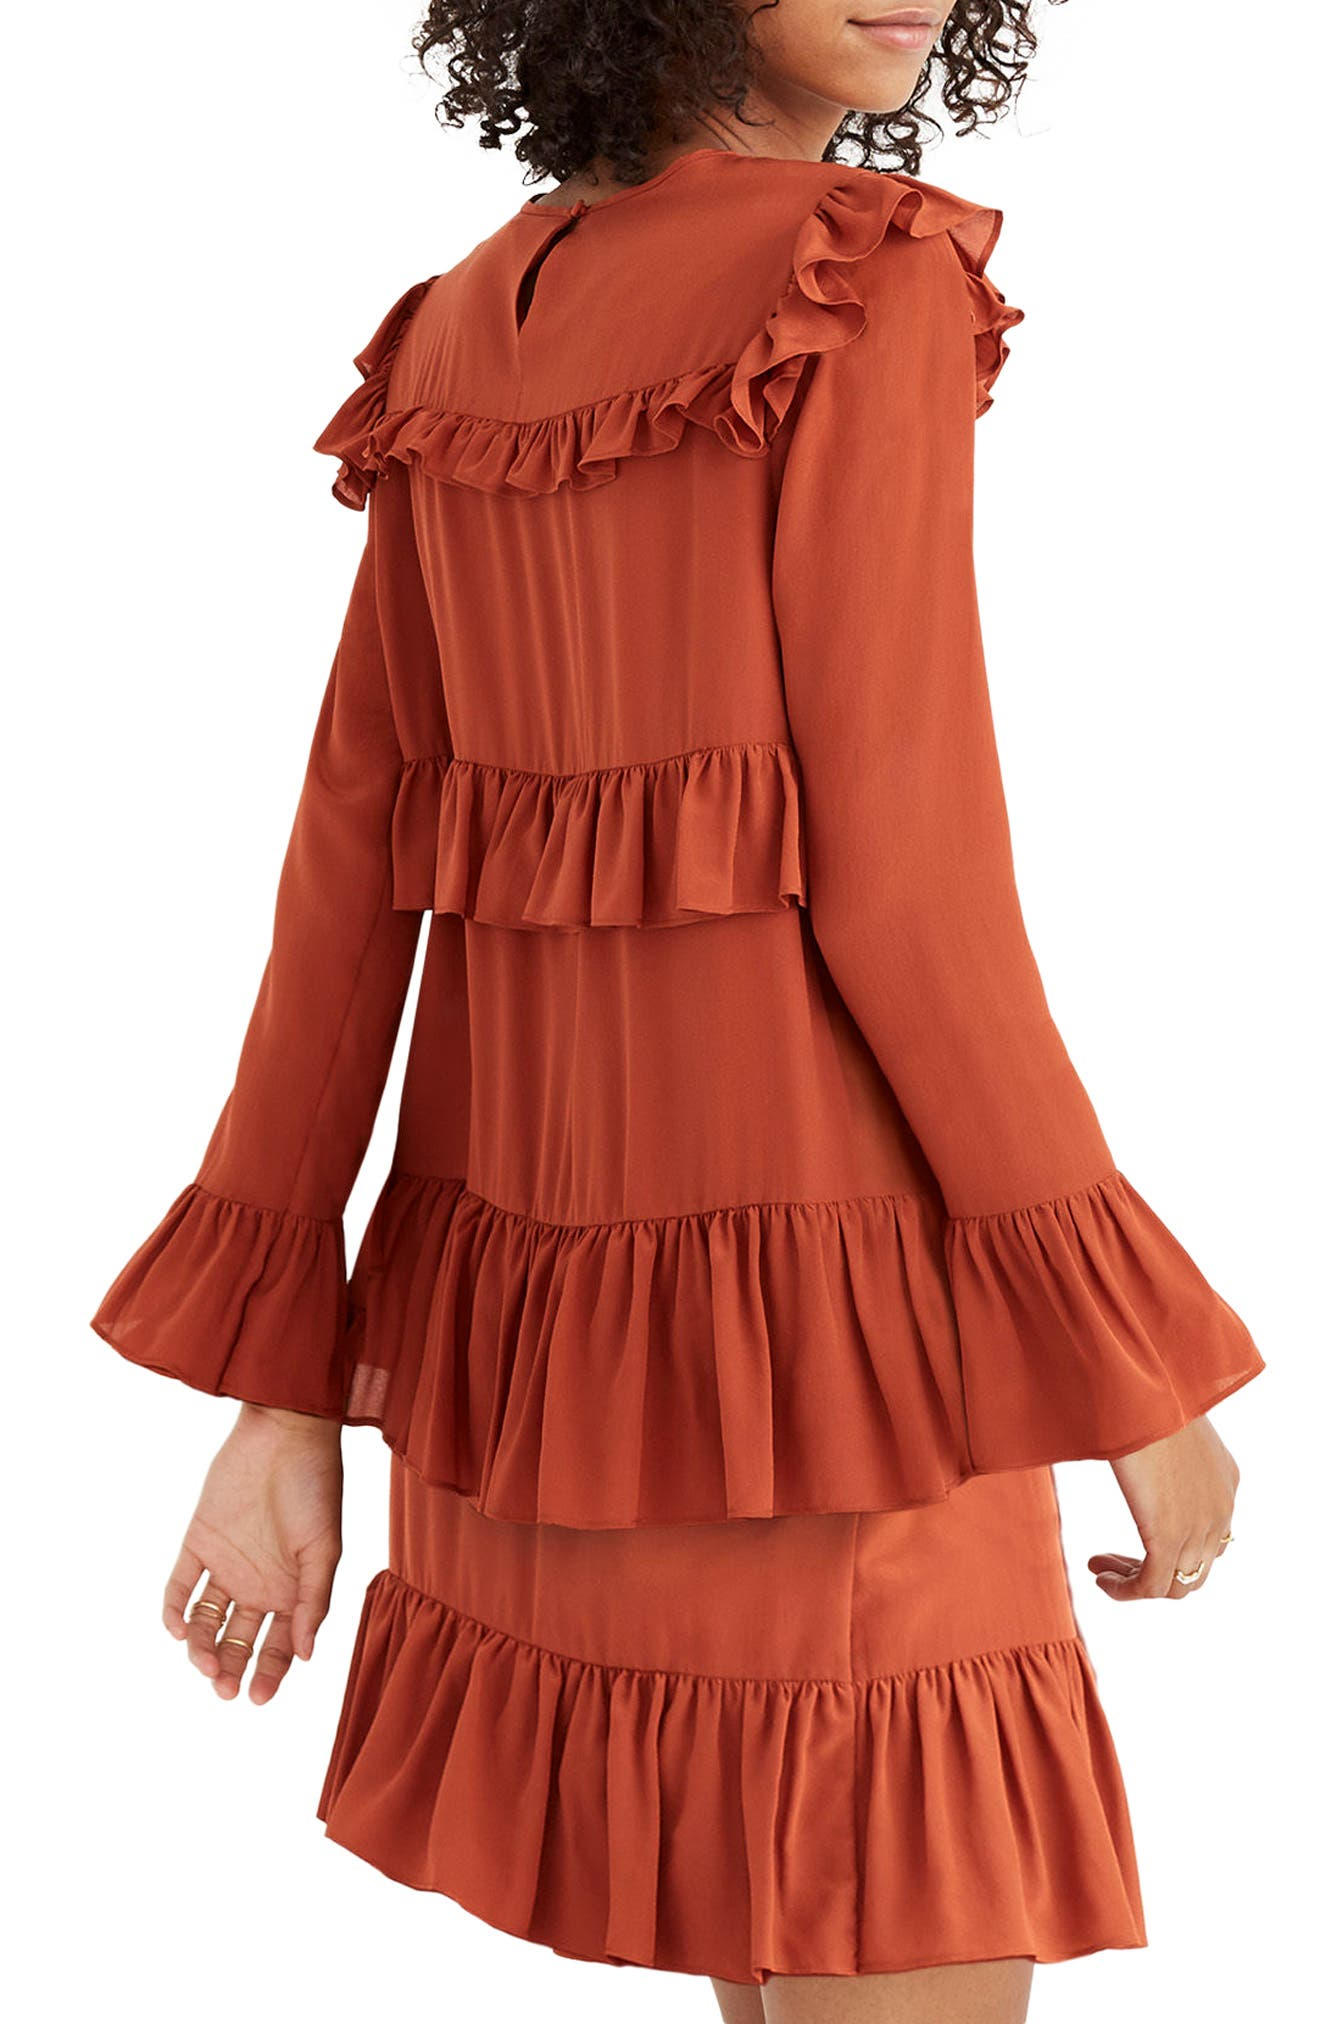 Waterlily Ruffle Dress,                             Alternate thumbnail 2, color,                             800